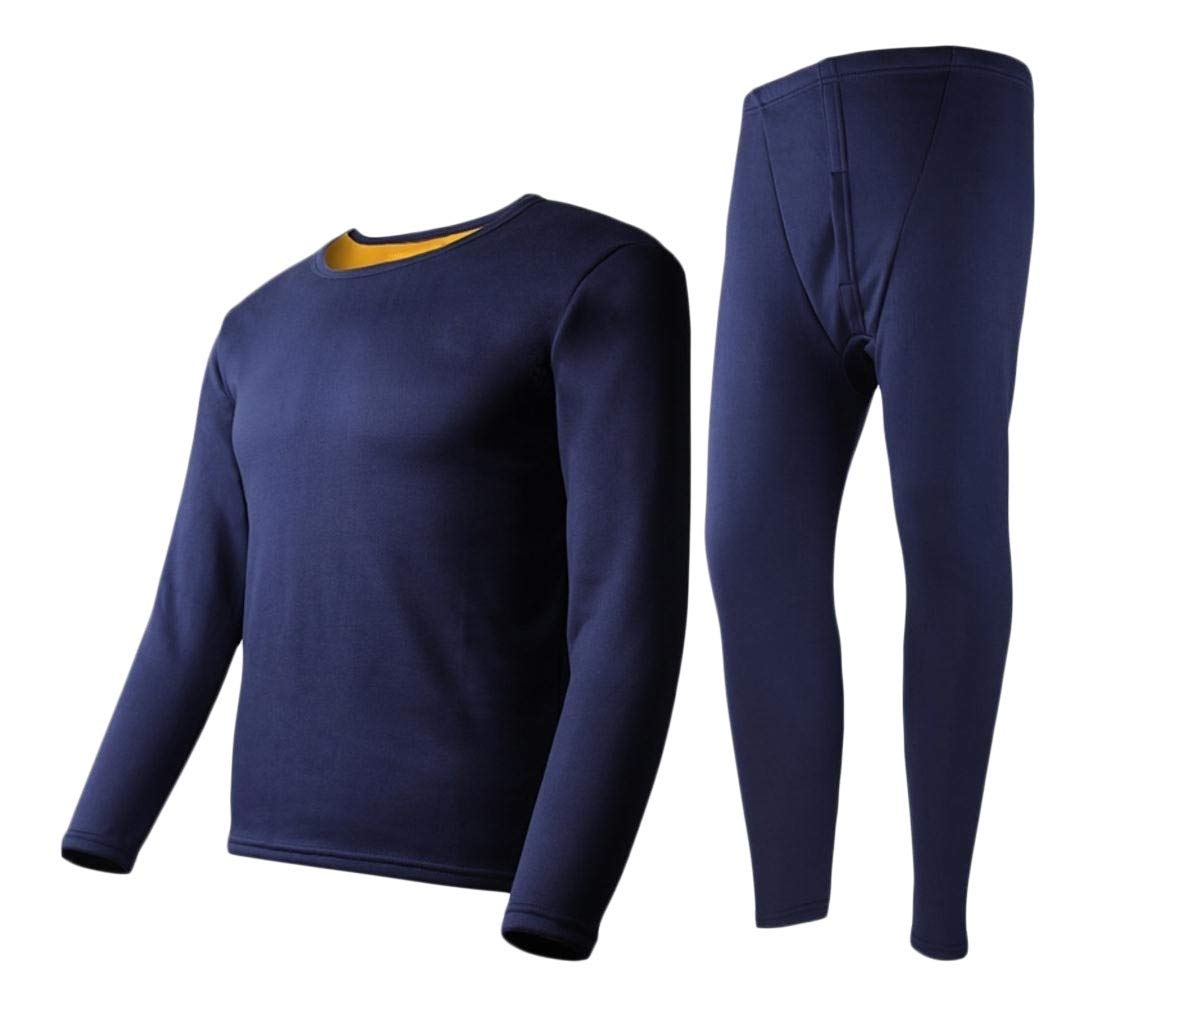 Doufine Men Long Johns Thermal Underwear Ultra Soft Top & Bottom Set